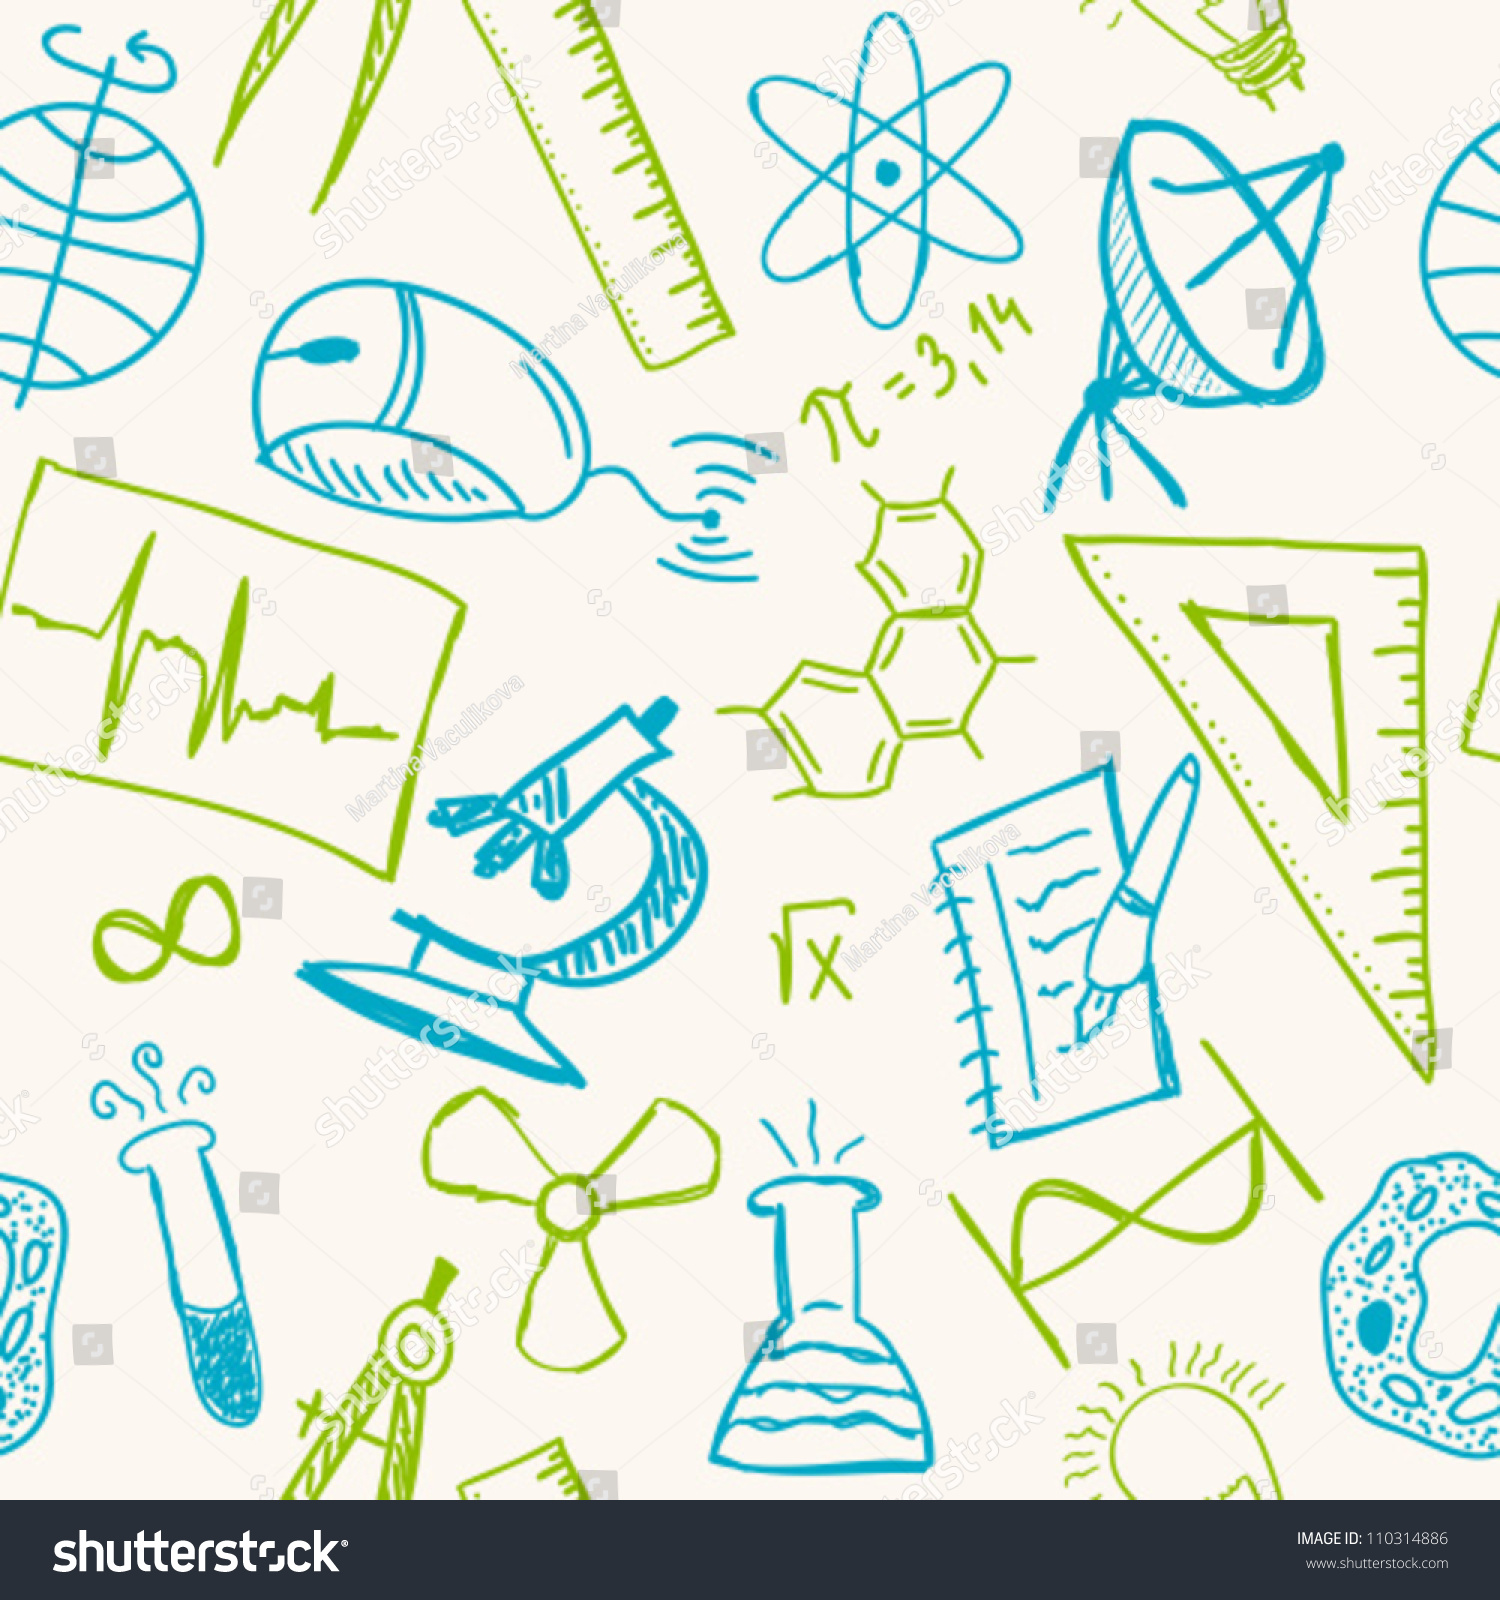 Science Drawings On Seamless Pattern Scientific Stock Vector ...